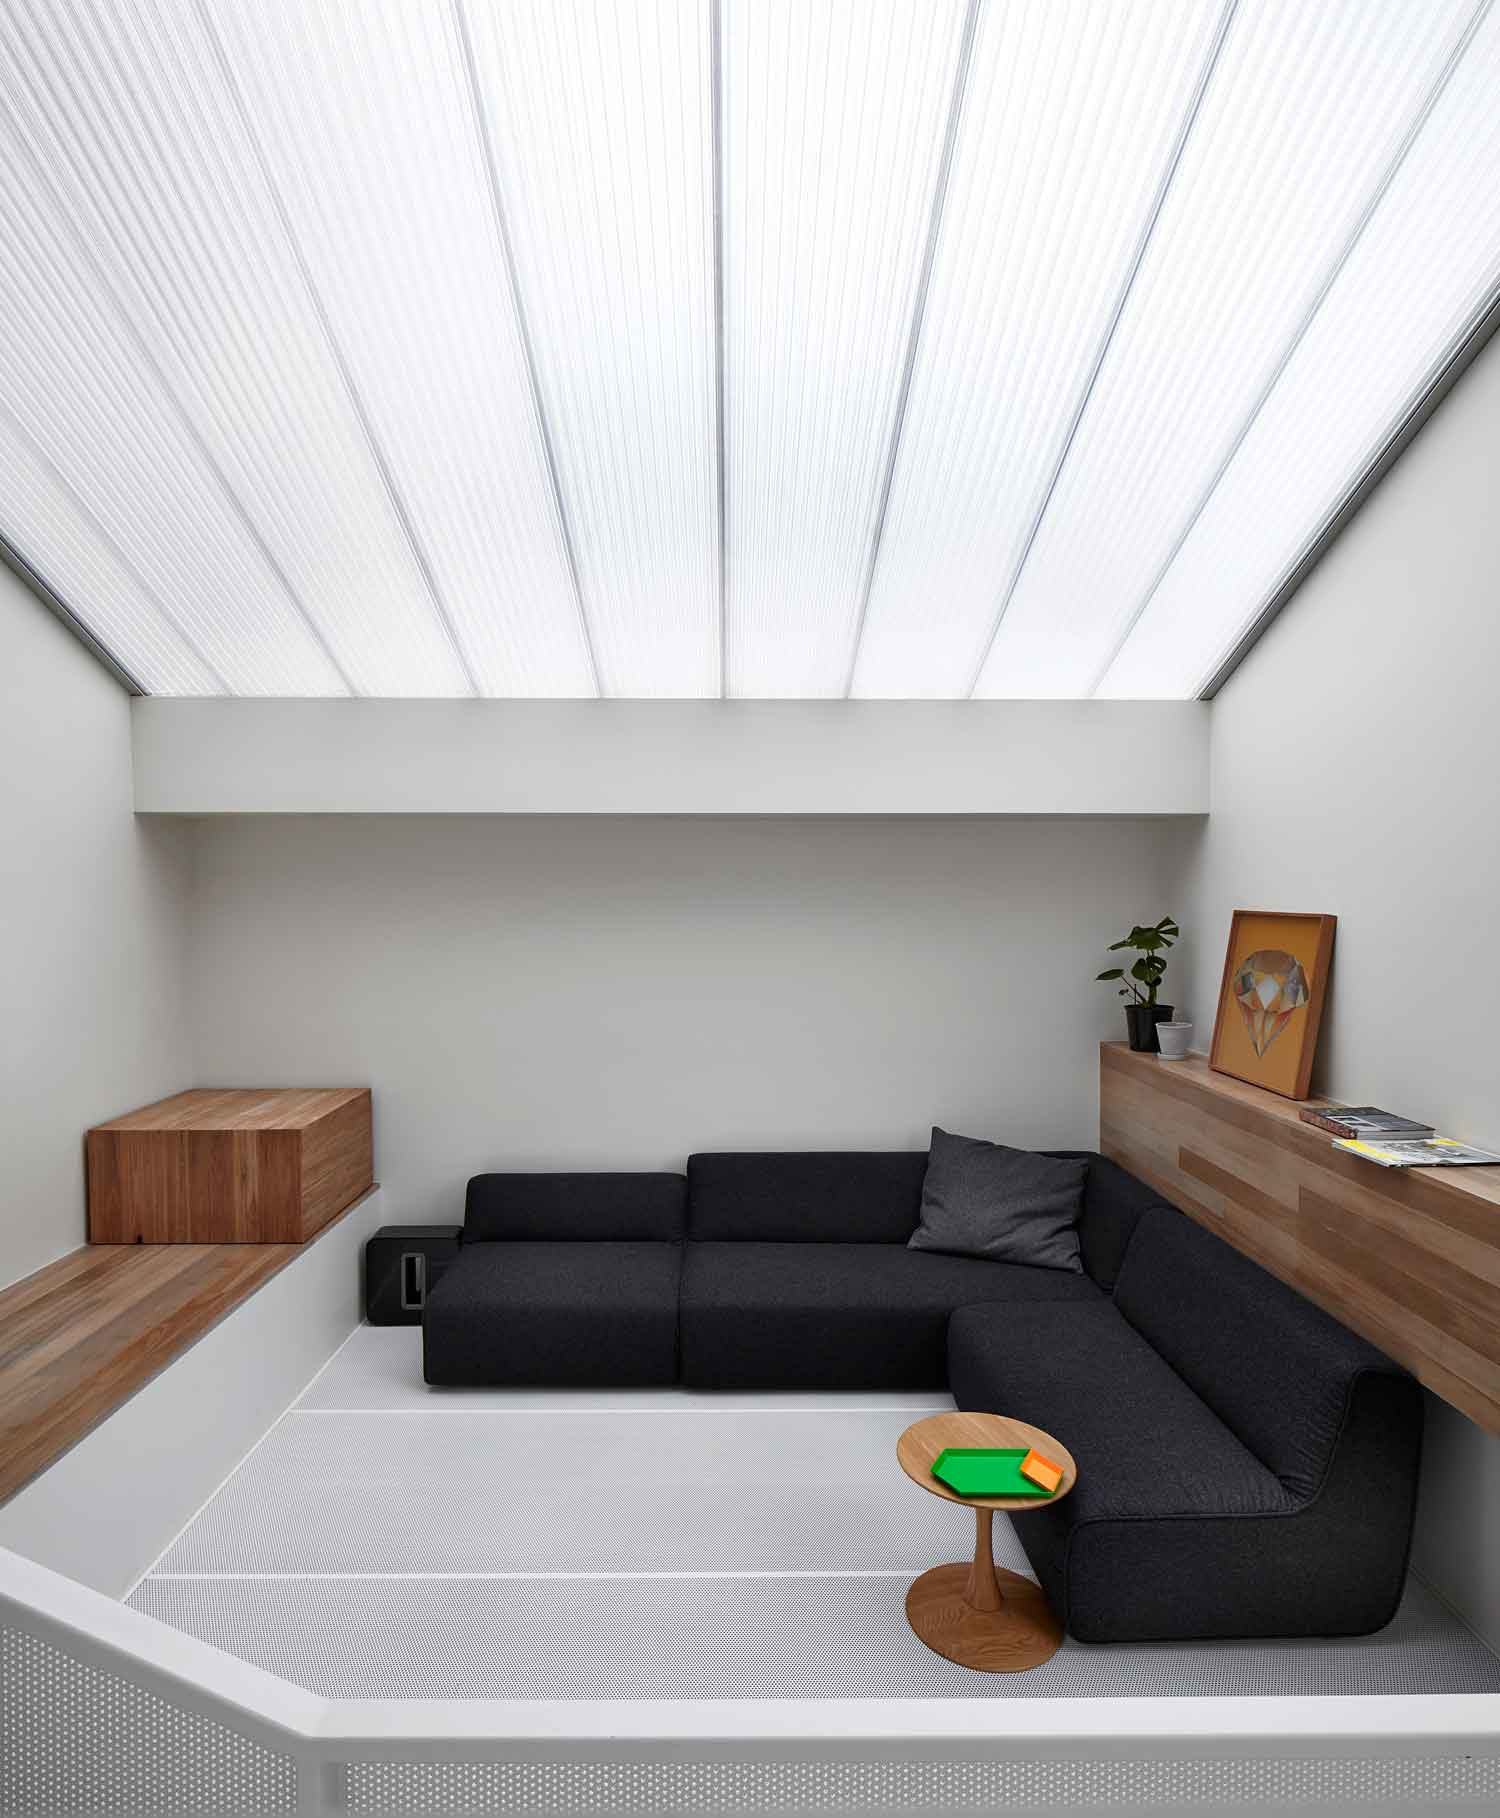 Gallery Post // Lightbox House by Edwards Moore, Melbourne.